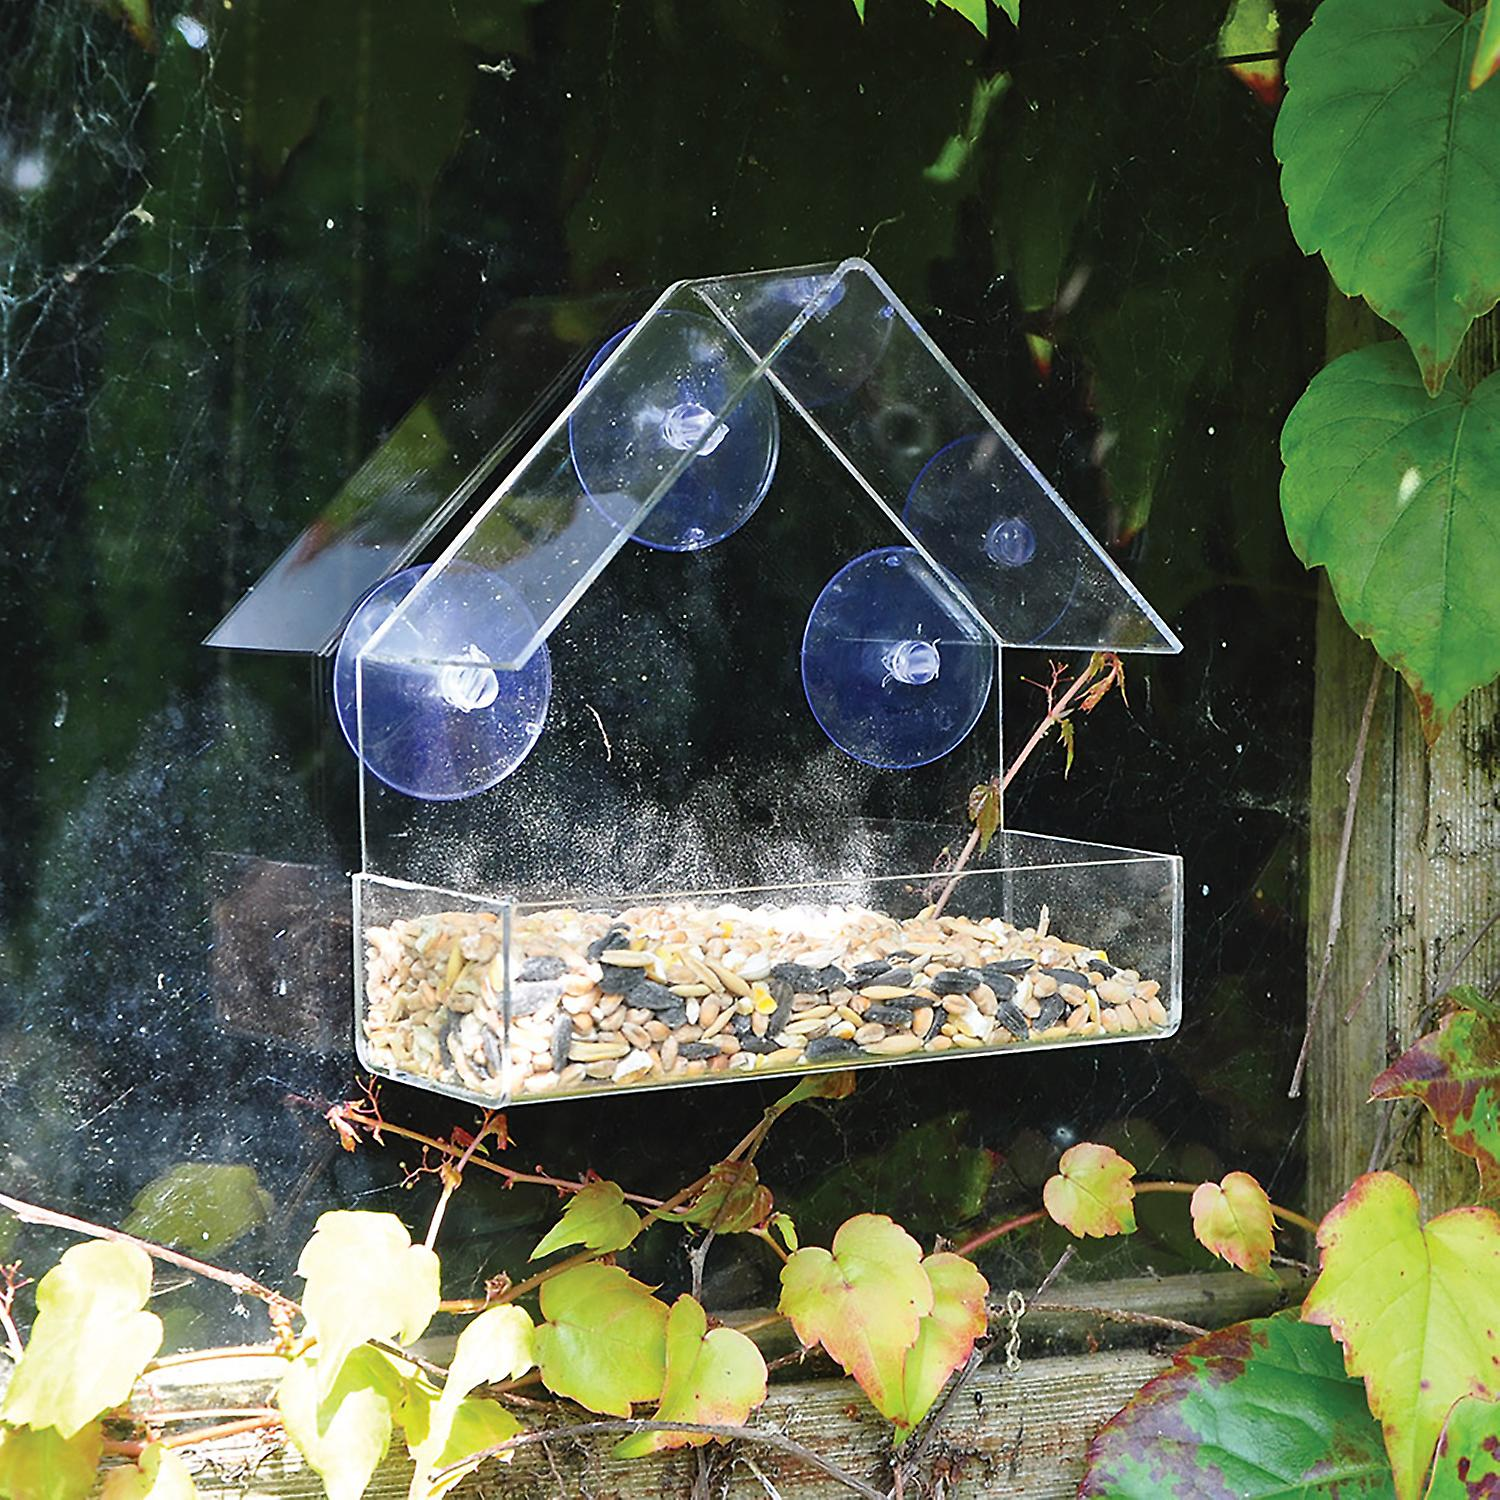 Natures Market BFWINDOW Clear Perspex Window Viewing Suction Cup Hanging Table Tray Perch Nut Peanut Seed Wild Bird Feeder